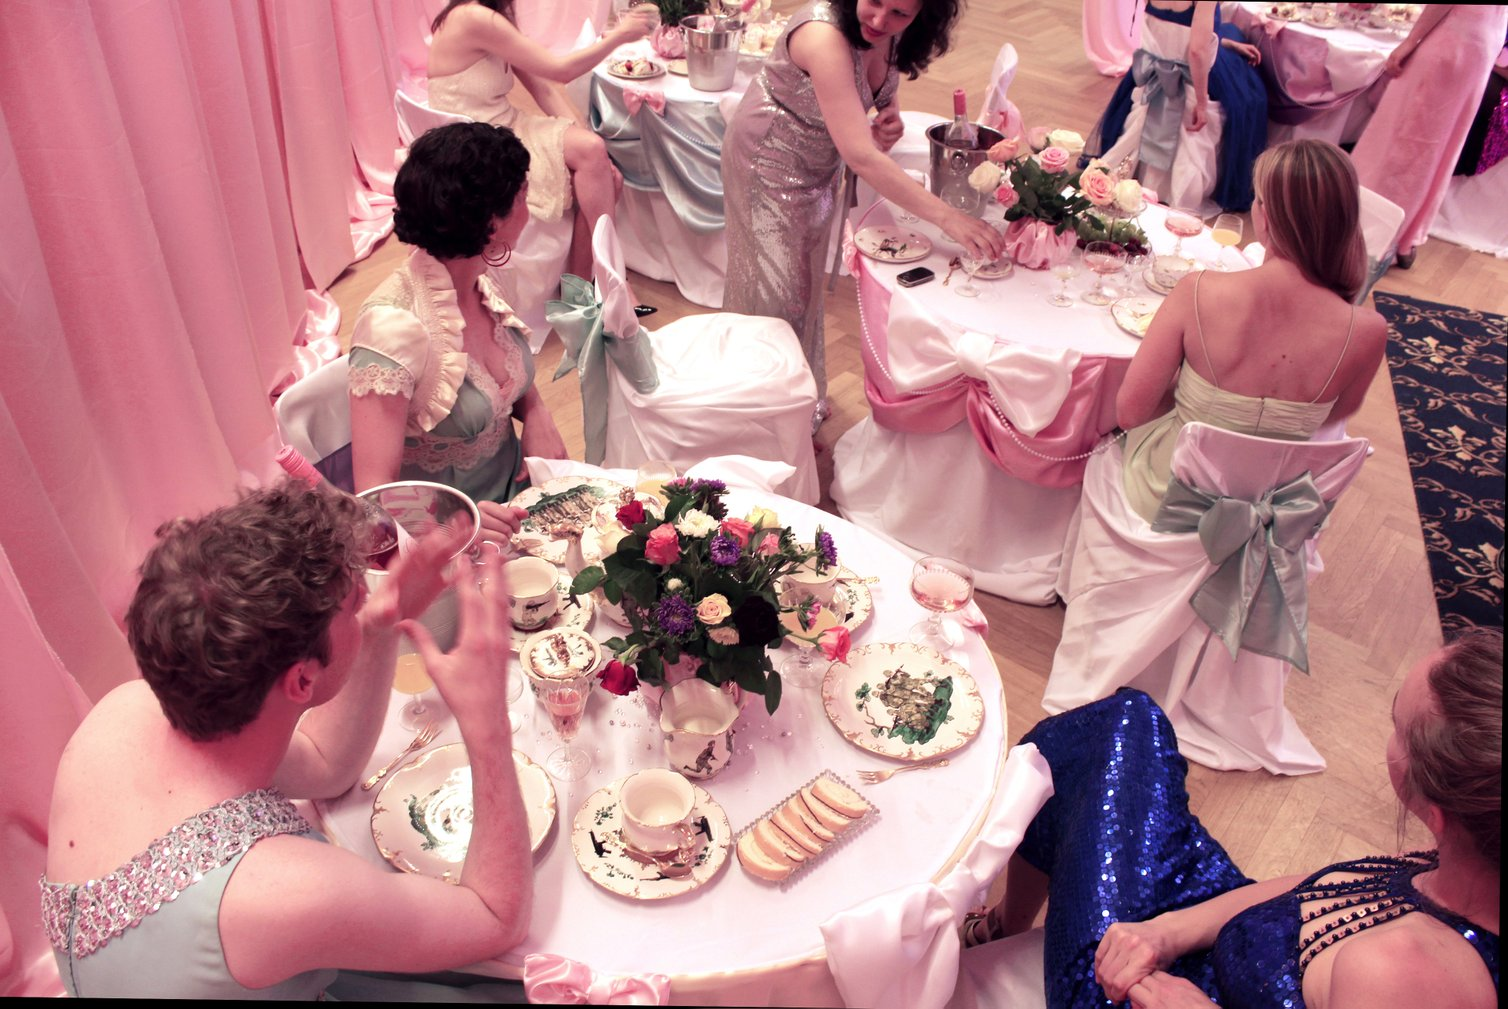 Charlotte Arnhold, Girlz Club (A Nice Cup of Tea), performance (2015)